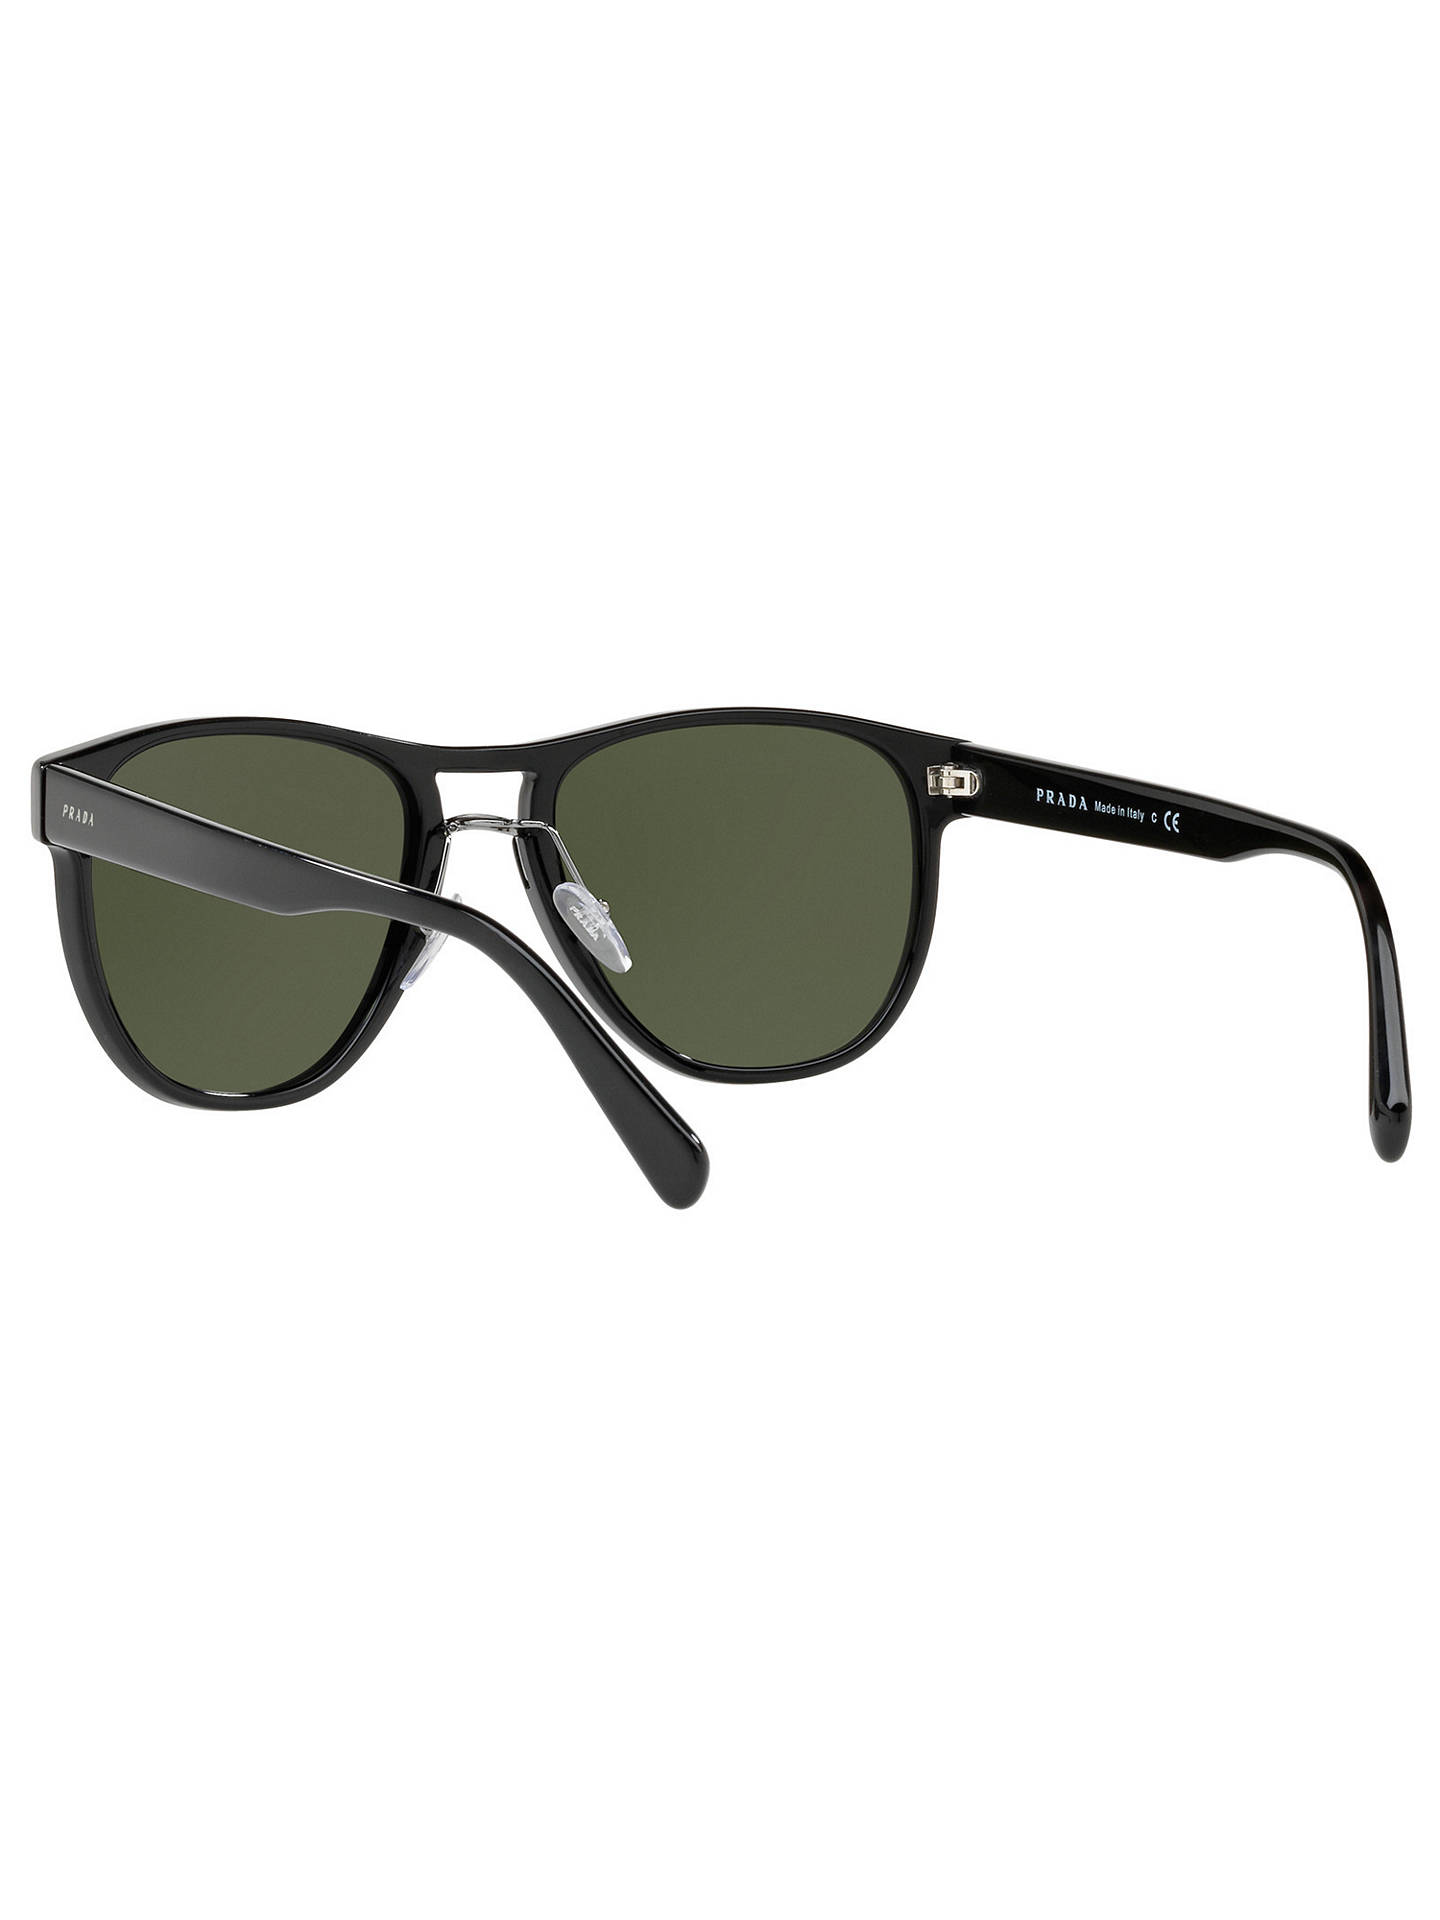 BuyPrada PR 09US Aviator Sunglasses, Black/Green Online at johnlewis.com